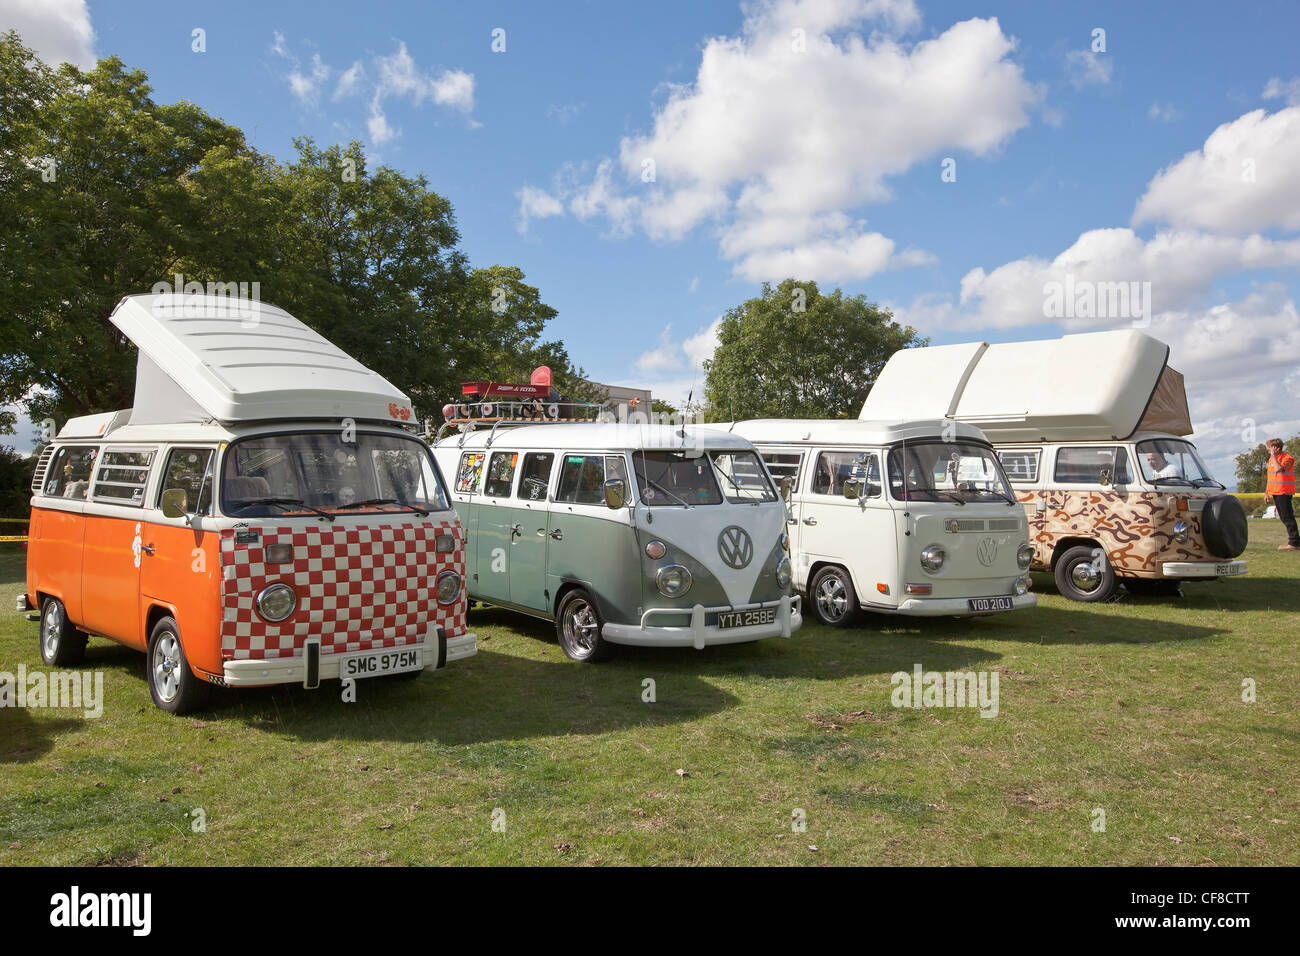 Front view of a row of VW campervans at the Thornfalcon Classic Car Show